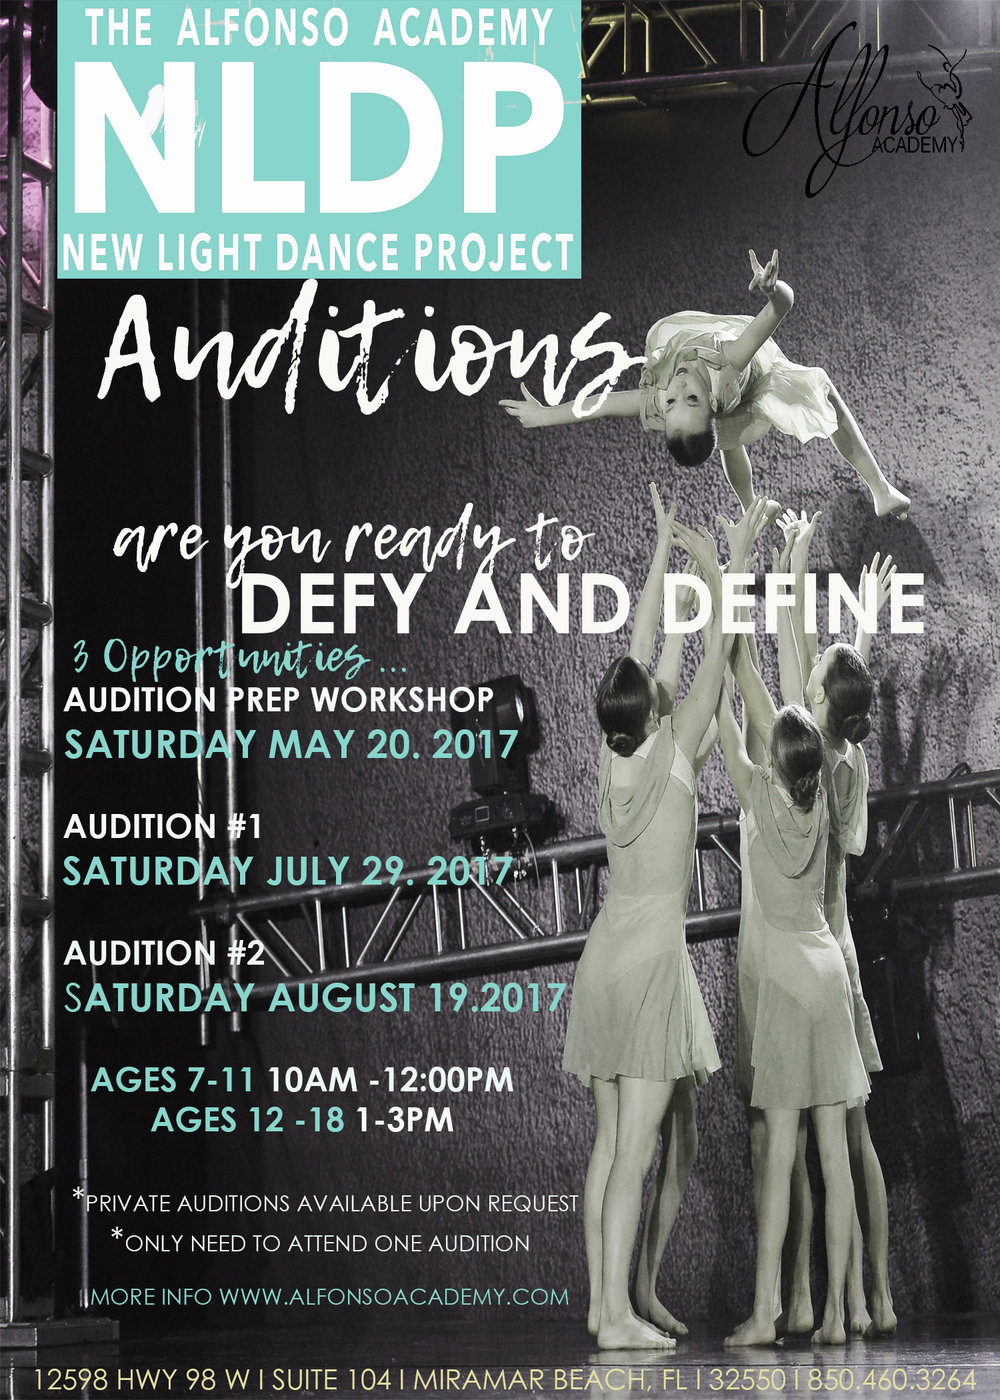 $25 Audition Fee. Please arrive at least 15 minutes early to fill out appropriate paperwork.  Girls :  Black Leotard, Pink Tights, Hair in a Bun. Bring water, ballet shoes, and any other preferred dance shoes.  Boys: White Shirt, Black shorts, leggings, or pants. Bring water, ballet shoes, and any other preferred dance shoes.